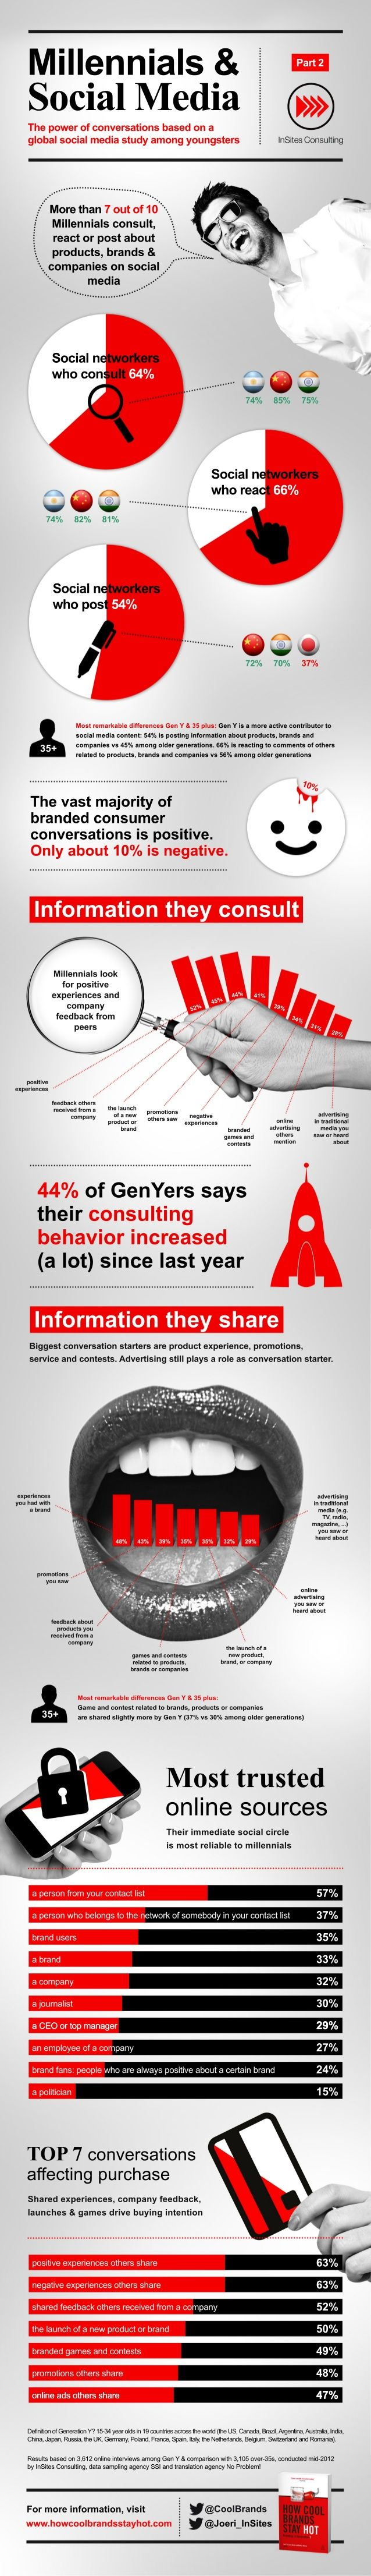 70% Of Under 35s Research, Post And Talk About Brands On Social Media [STUDY] - #Infographic via #BornToBeSocial